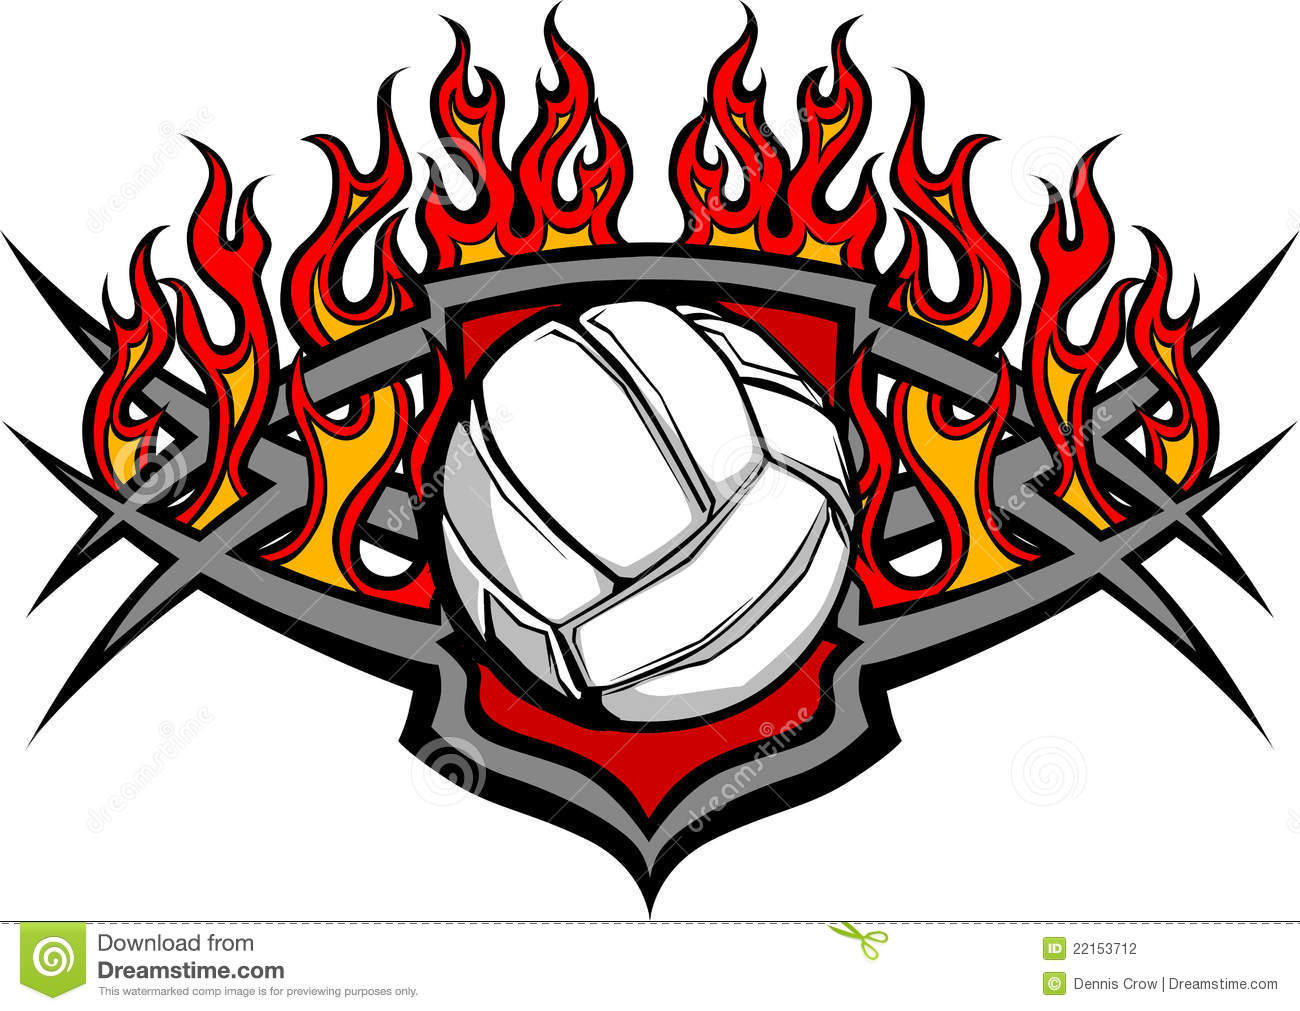 Volleyball Ball Template With Flames Image Stock Photography - Image ...